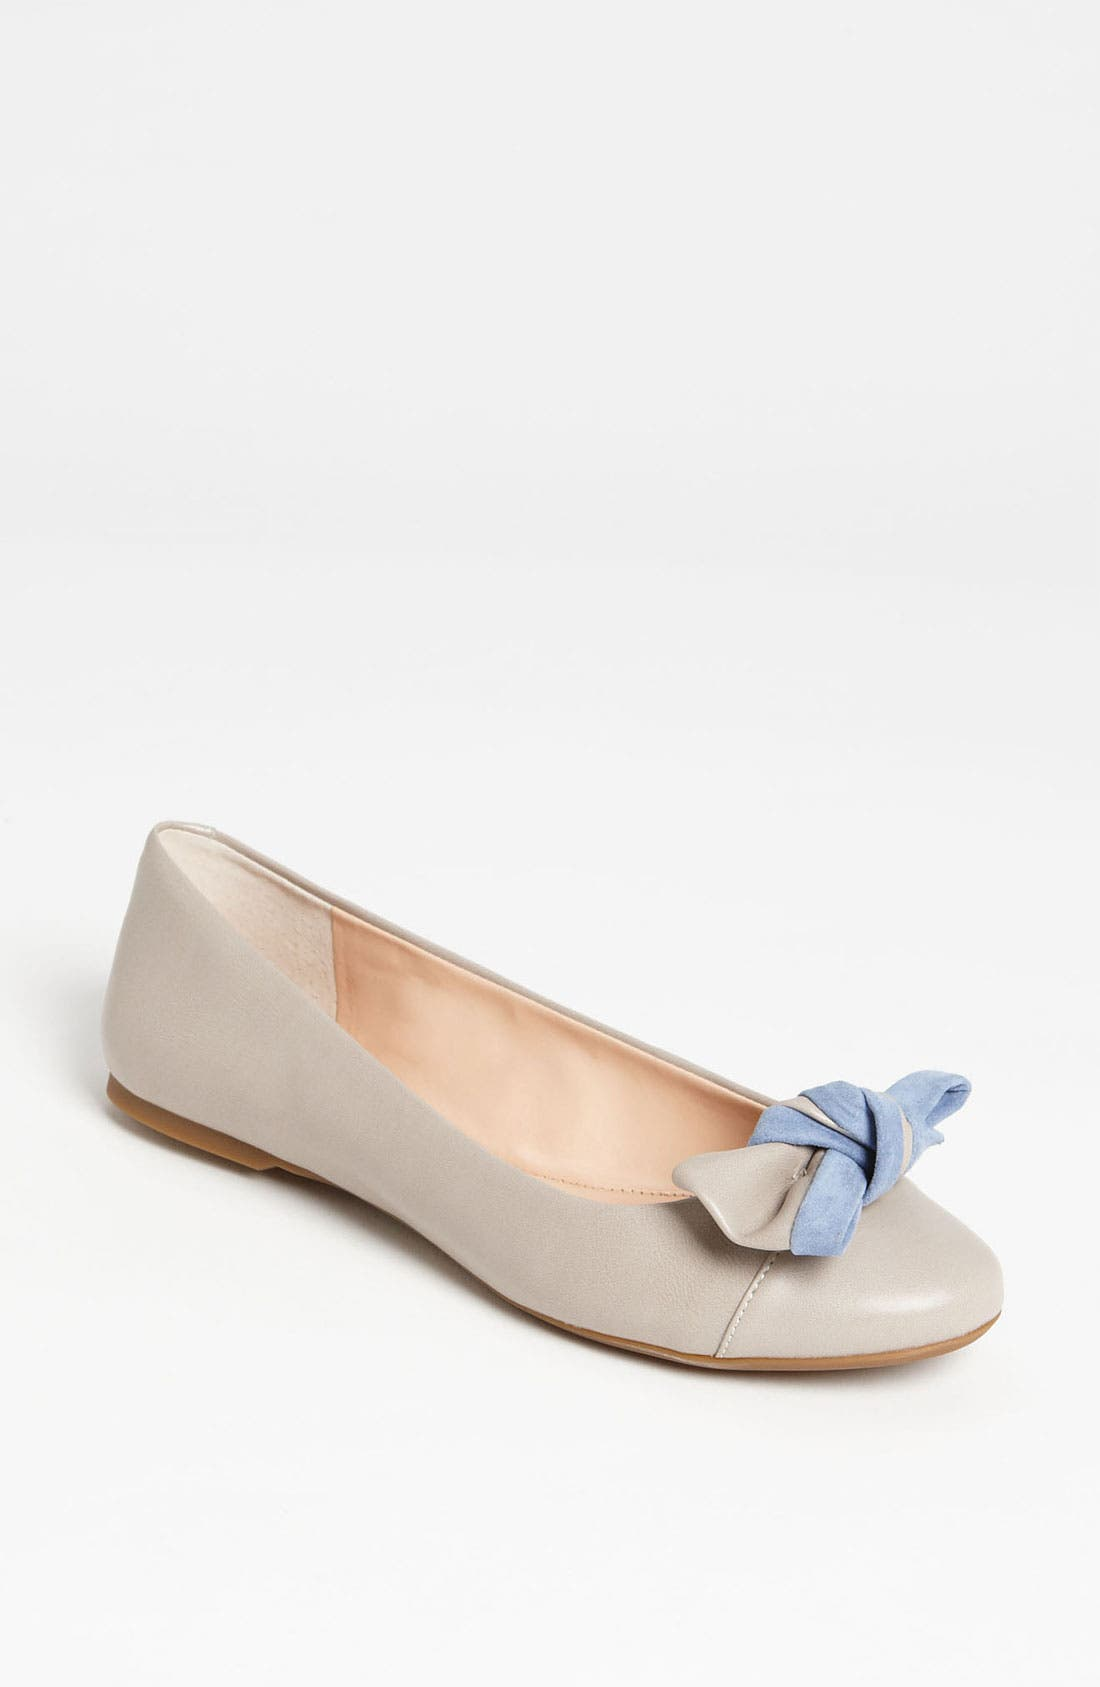 Main Image - Sole Society 'Callie' Flat